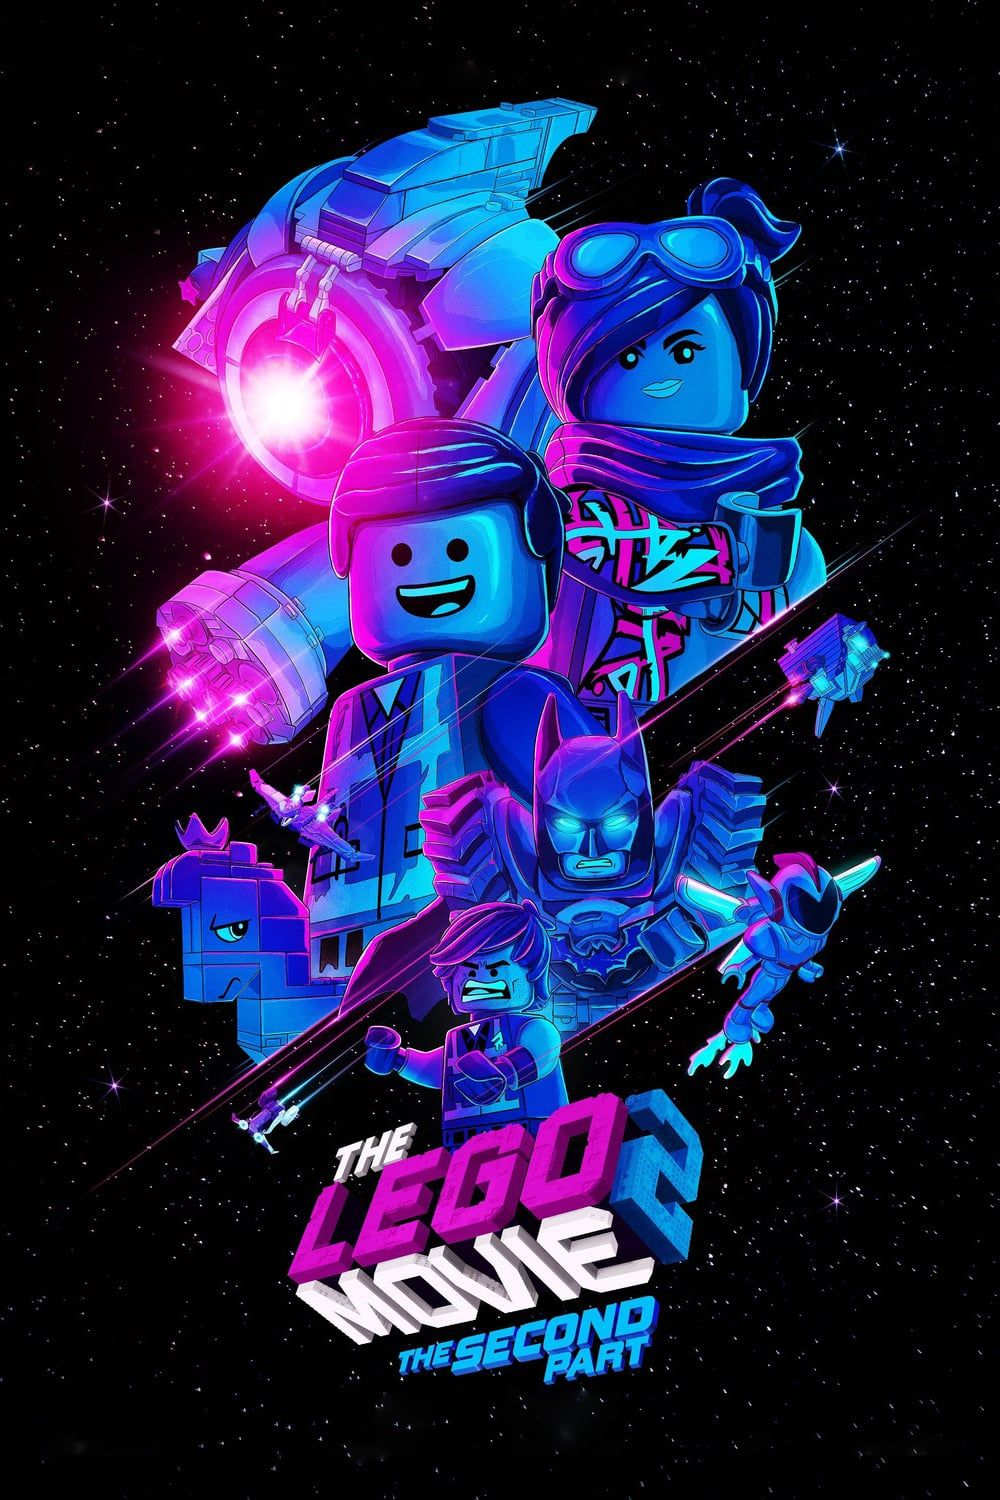 Full Watch The Lego Movie 2 Movie 2019 Download Online Free Watch Fullmovie Online Download Actionmovie Rom With Images Lego Movie Lego Movie 2 Lego Ninjago Movie